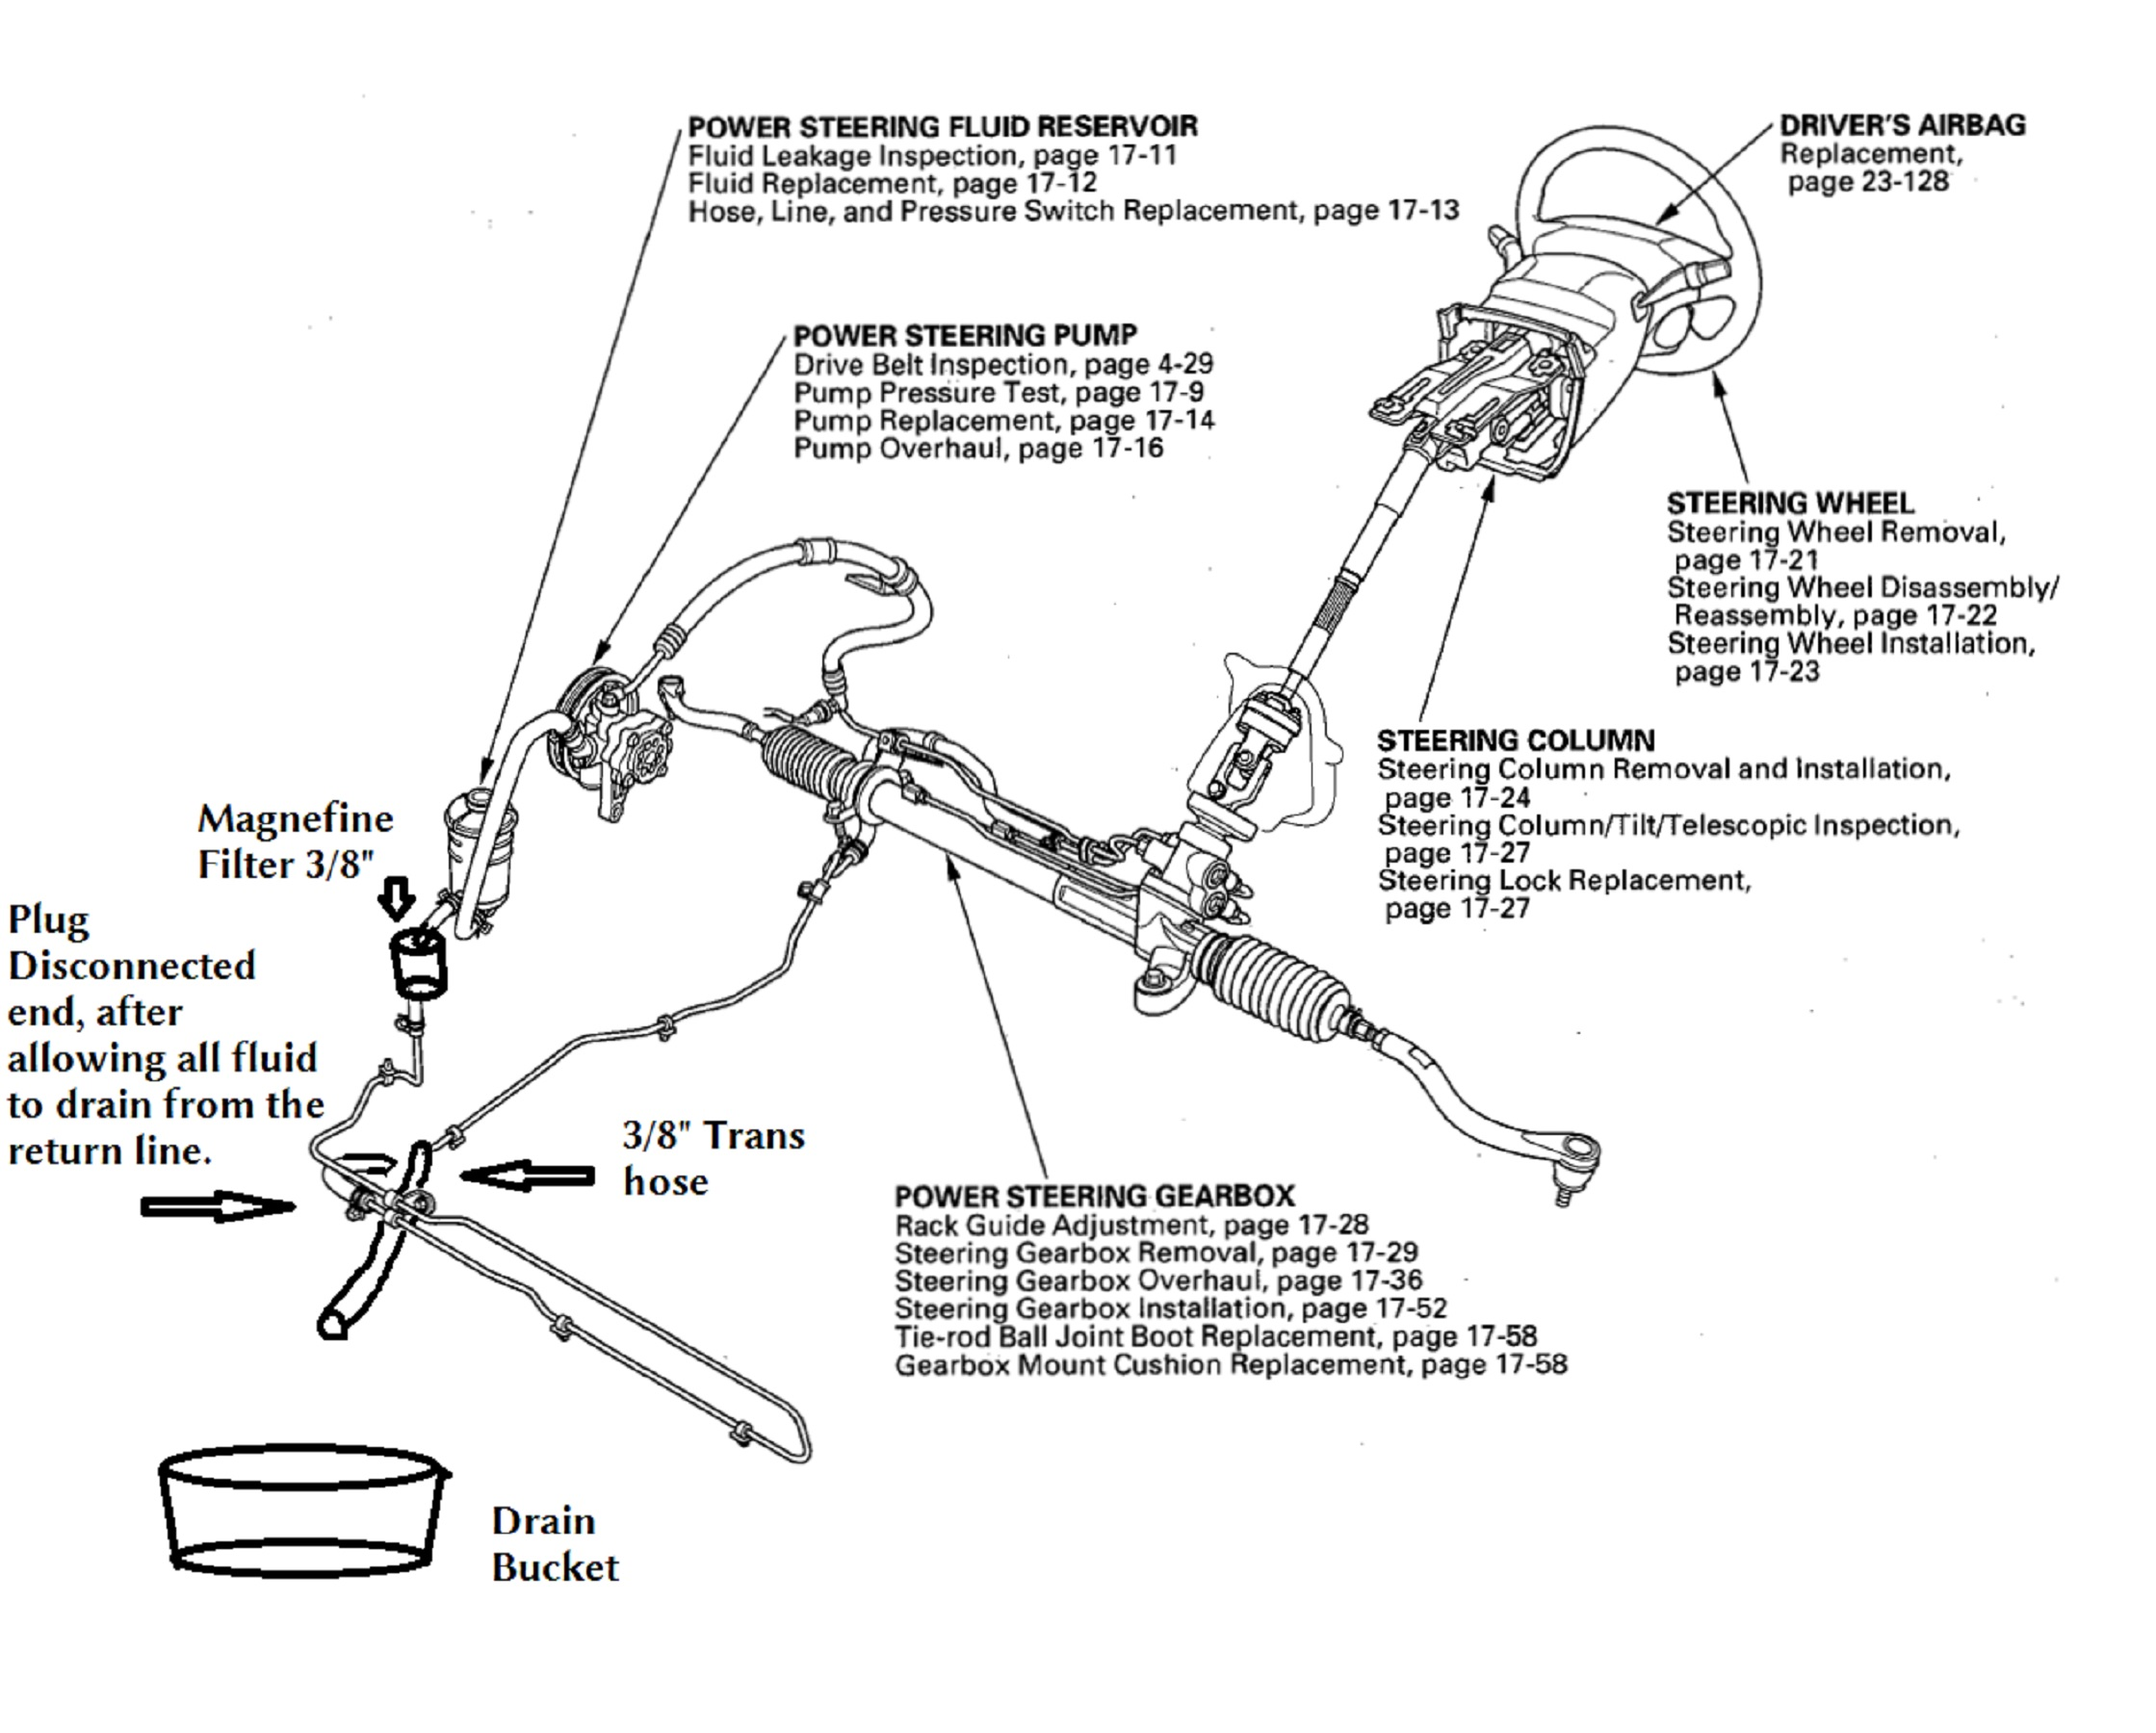 redline brake controller wiring diagram nissan frontier trailer service manual 2002 acura tl replacement system